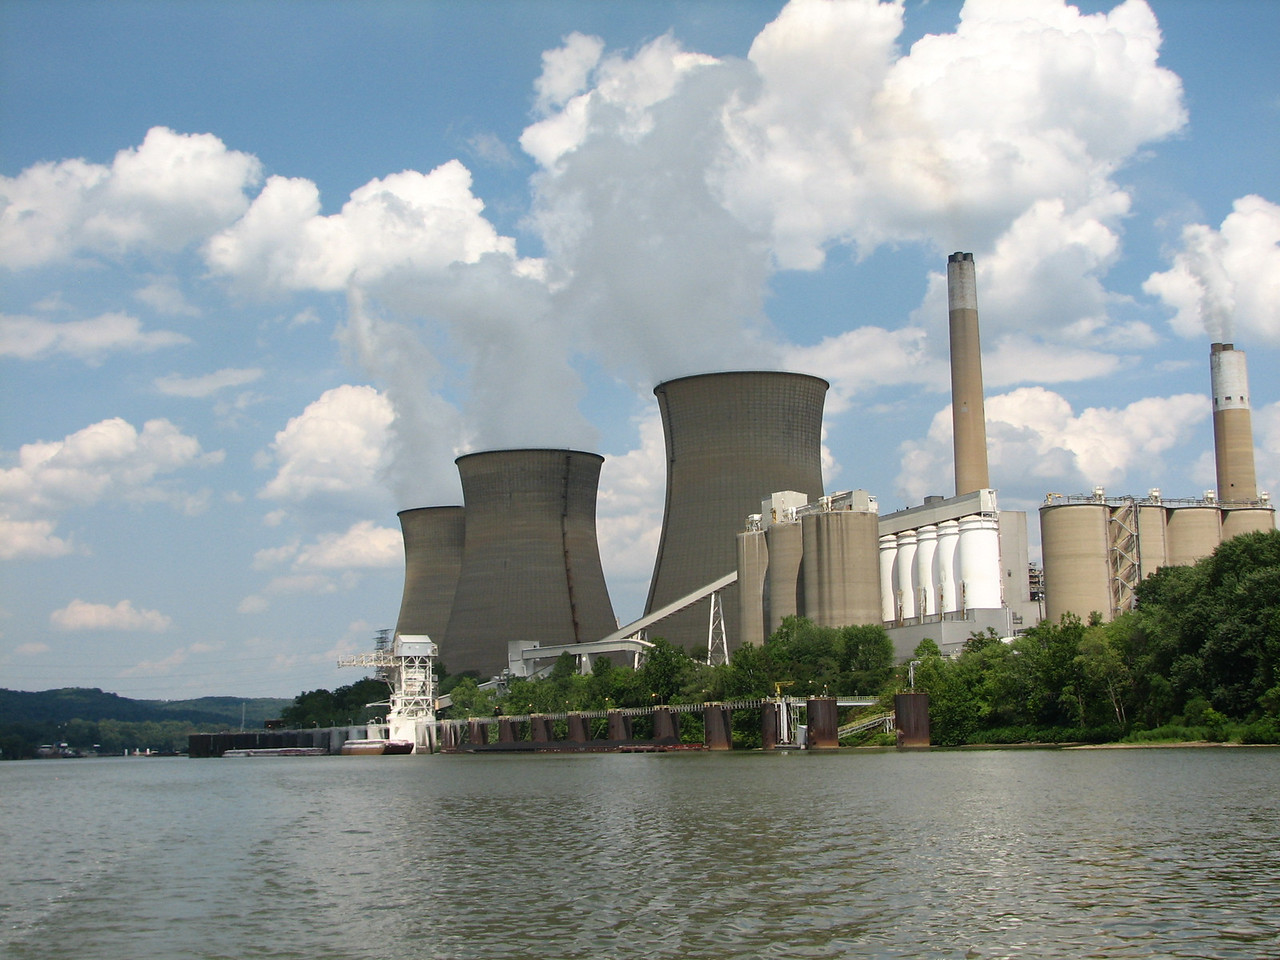 Cooling towers of a power plant along the Ohio River.